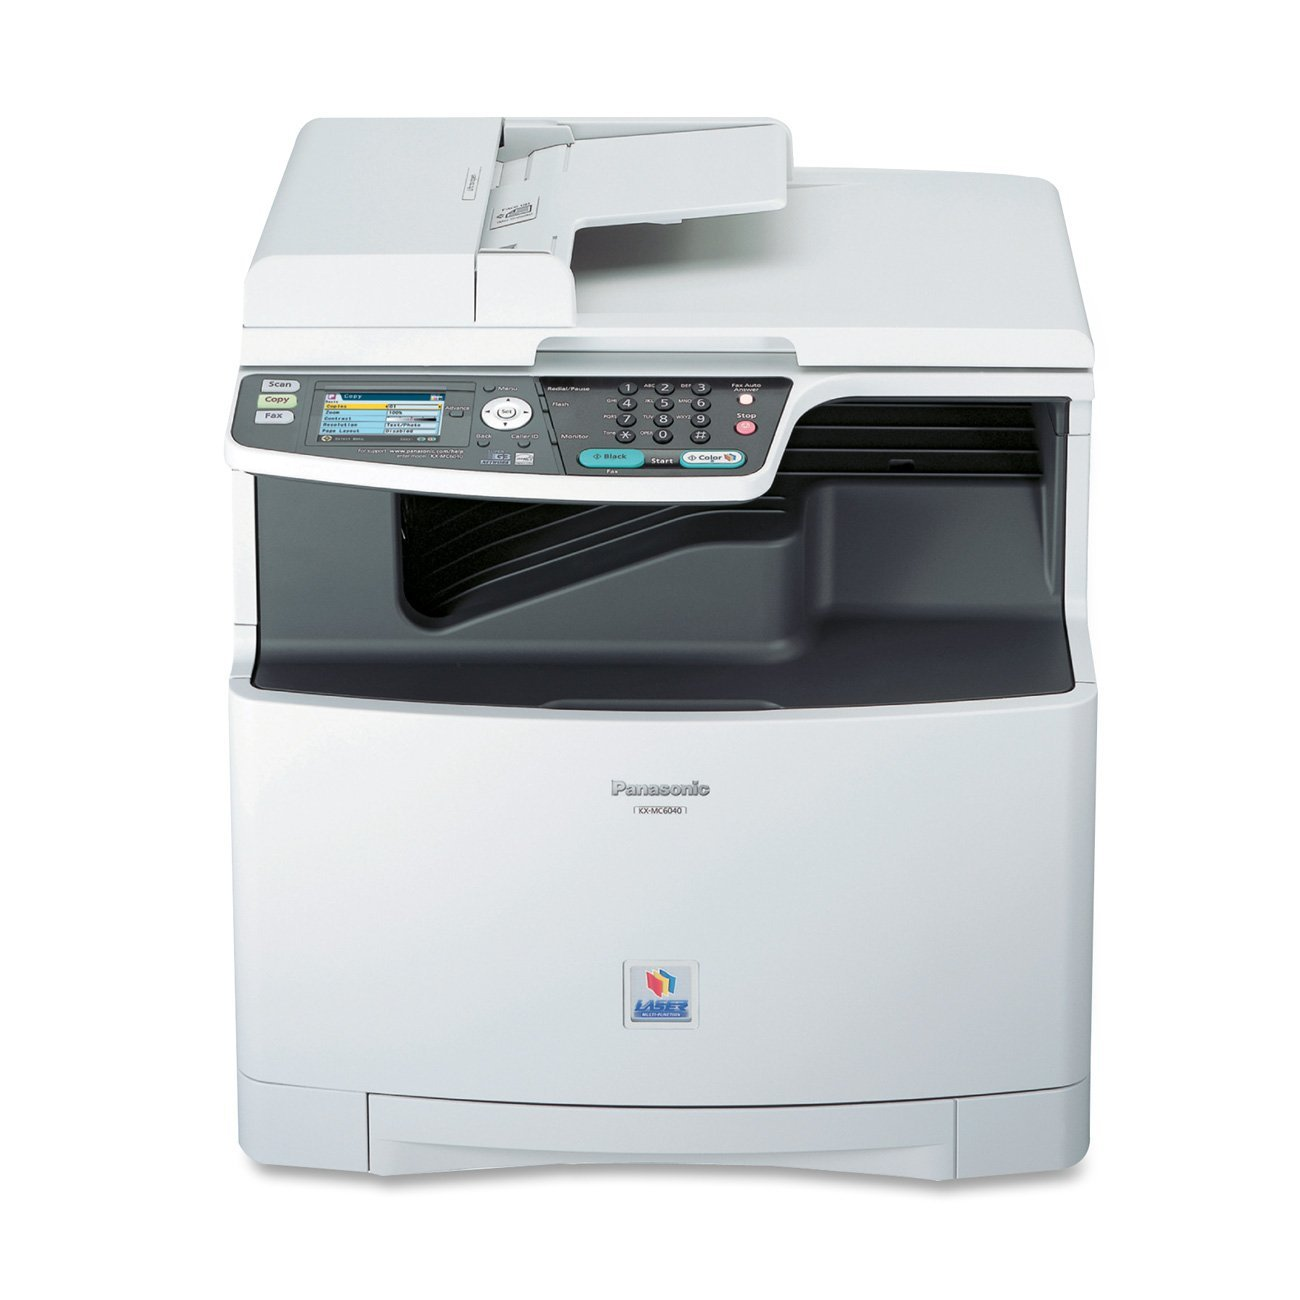 How to print report from panasonic fax machine KX-FP701